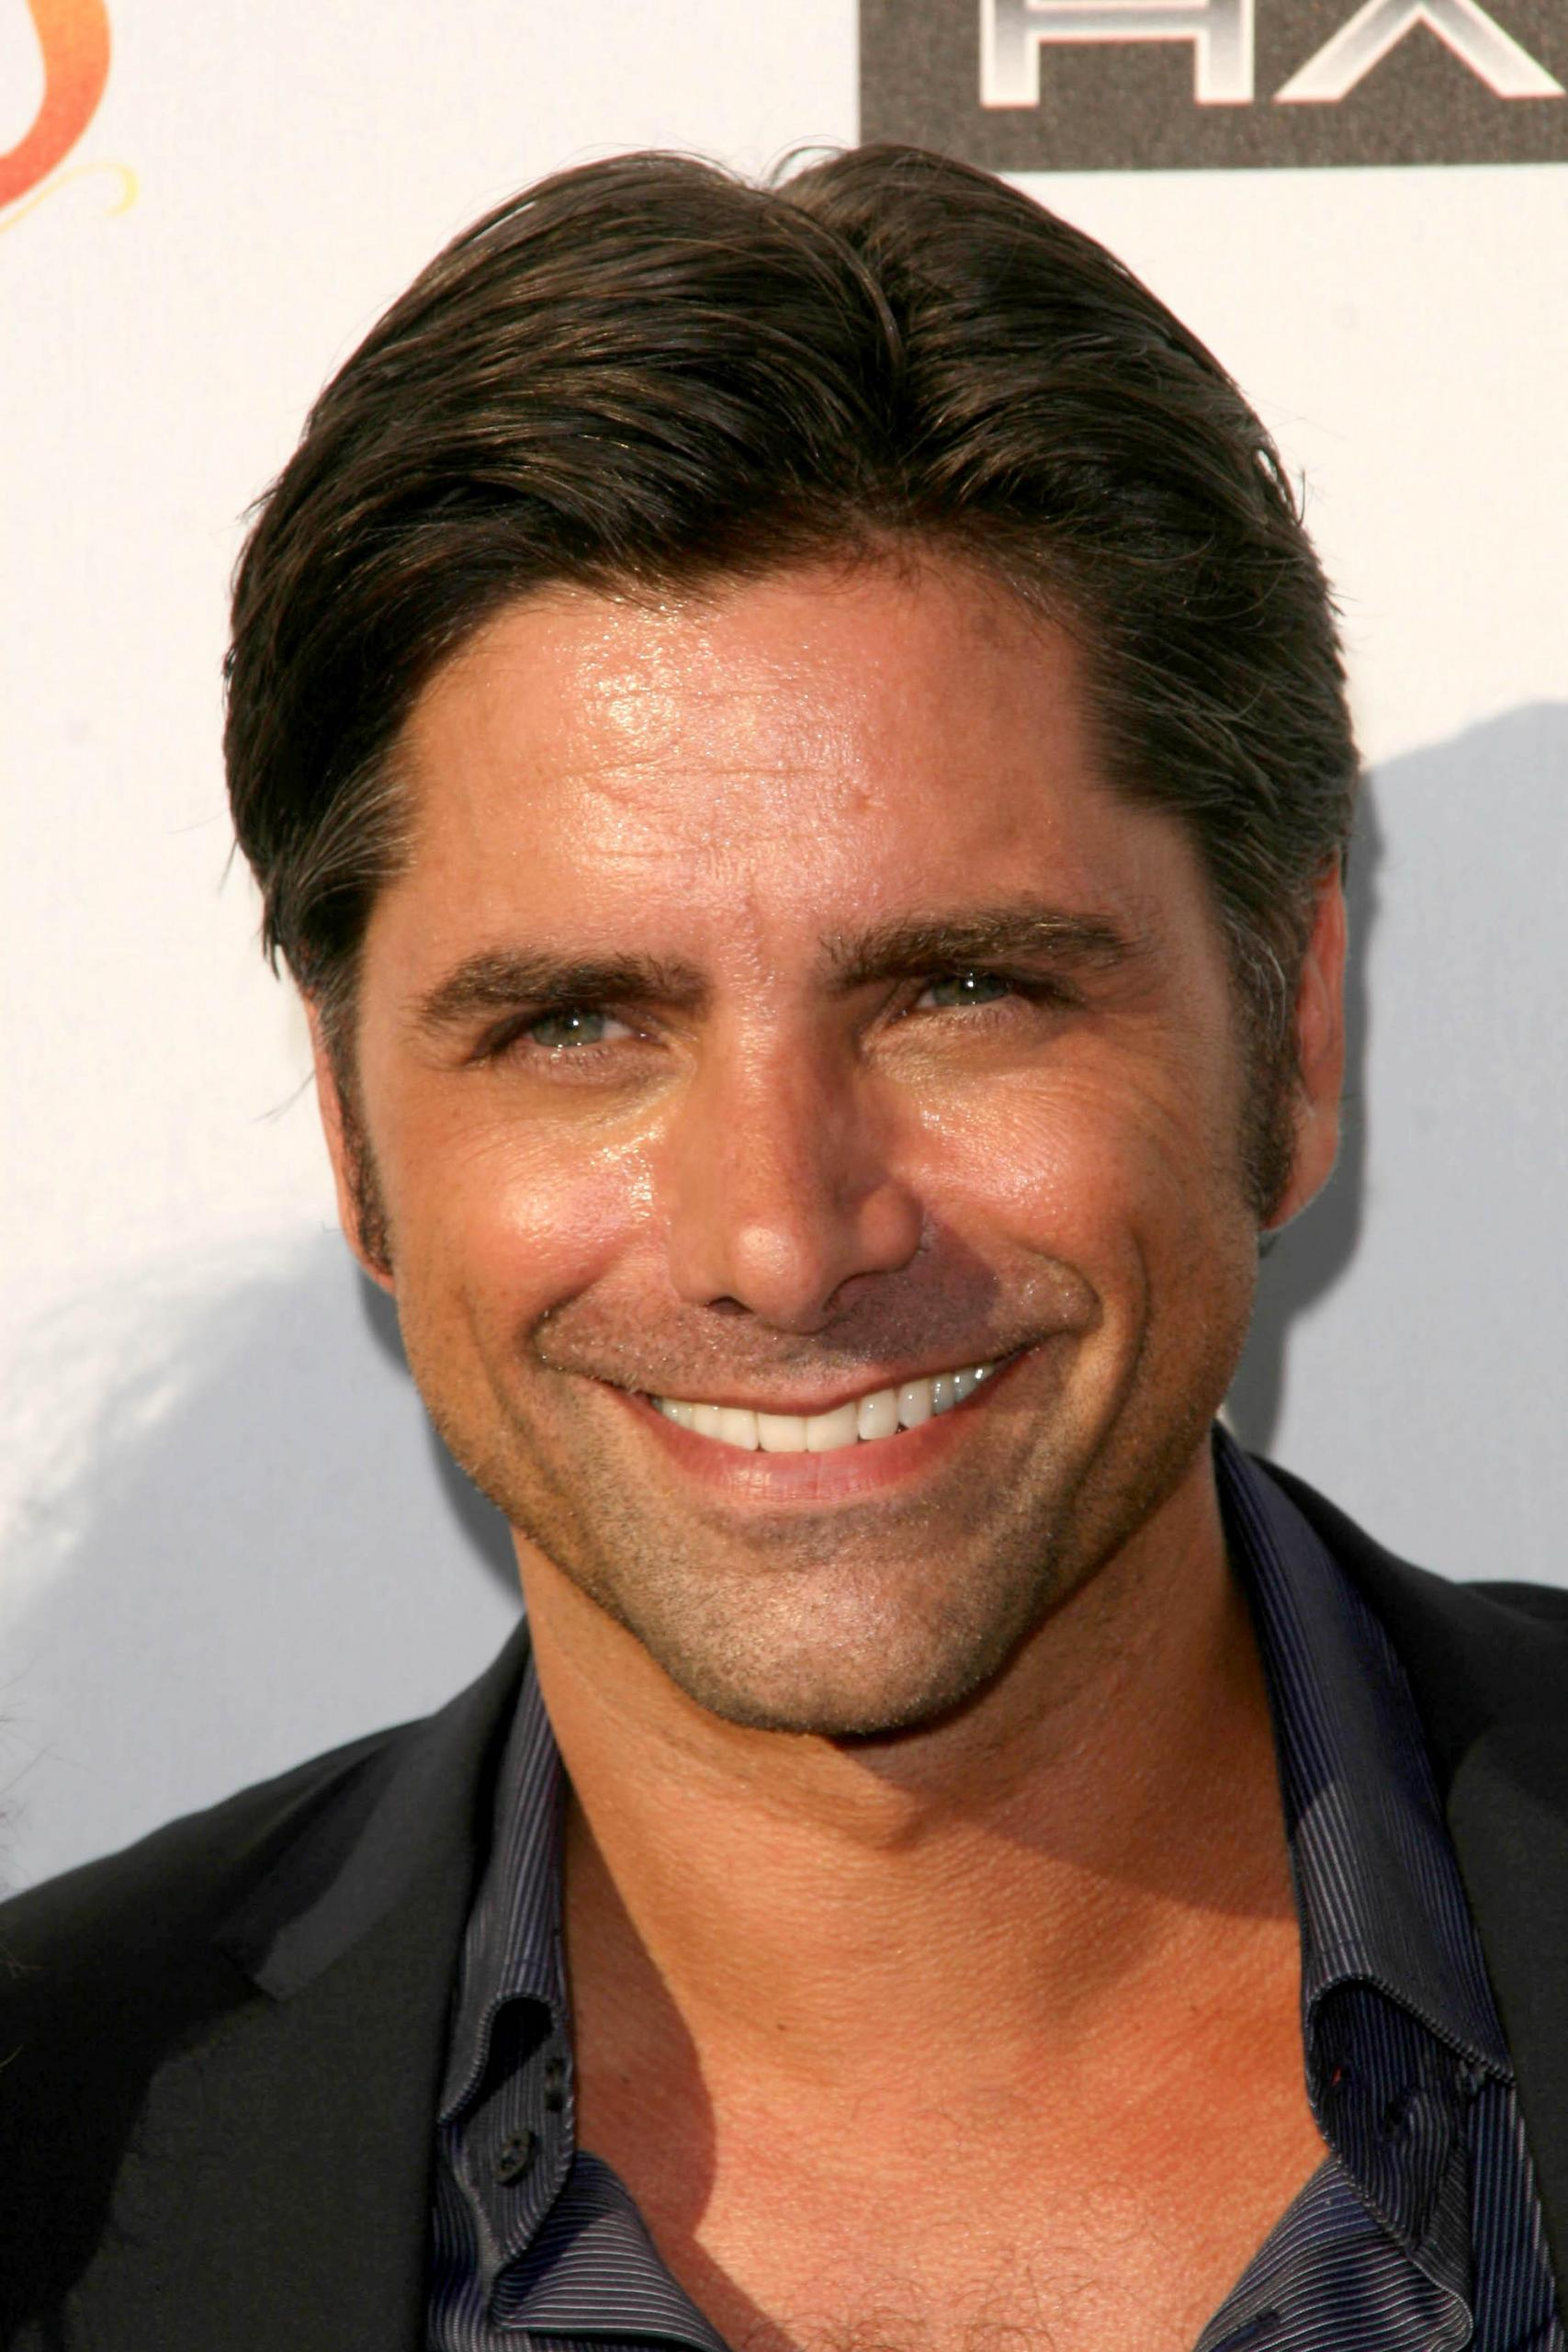 John stamos who is he dating 2012 6